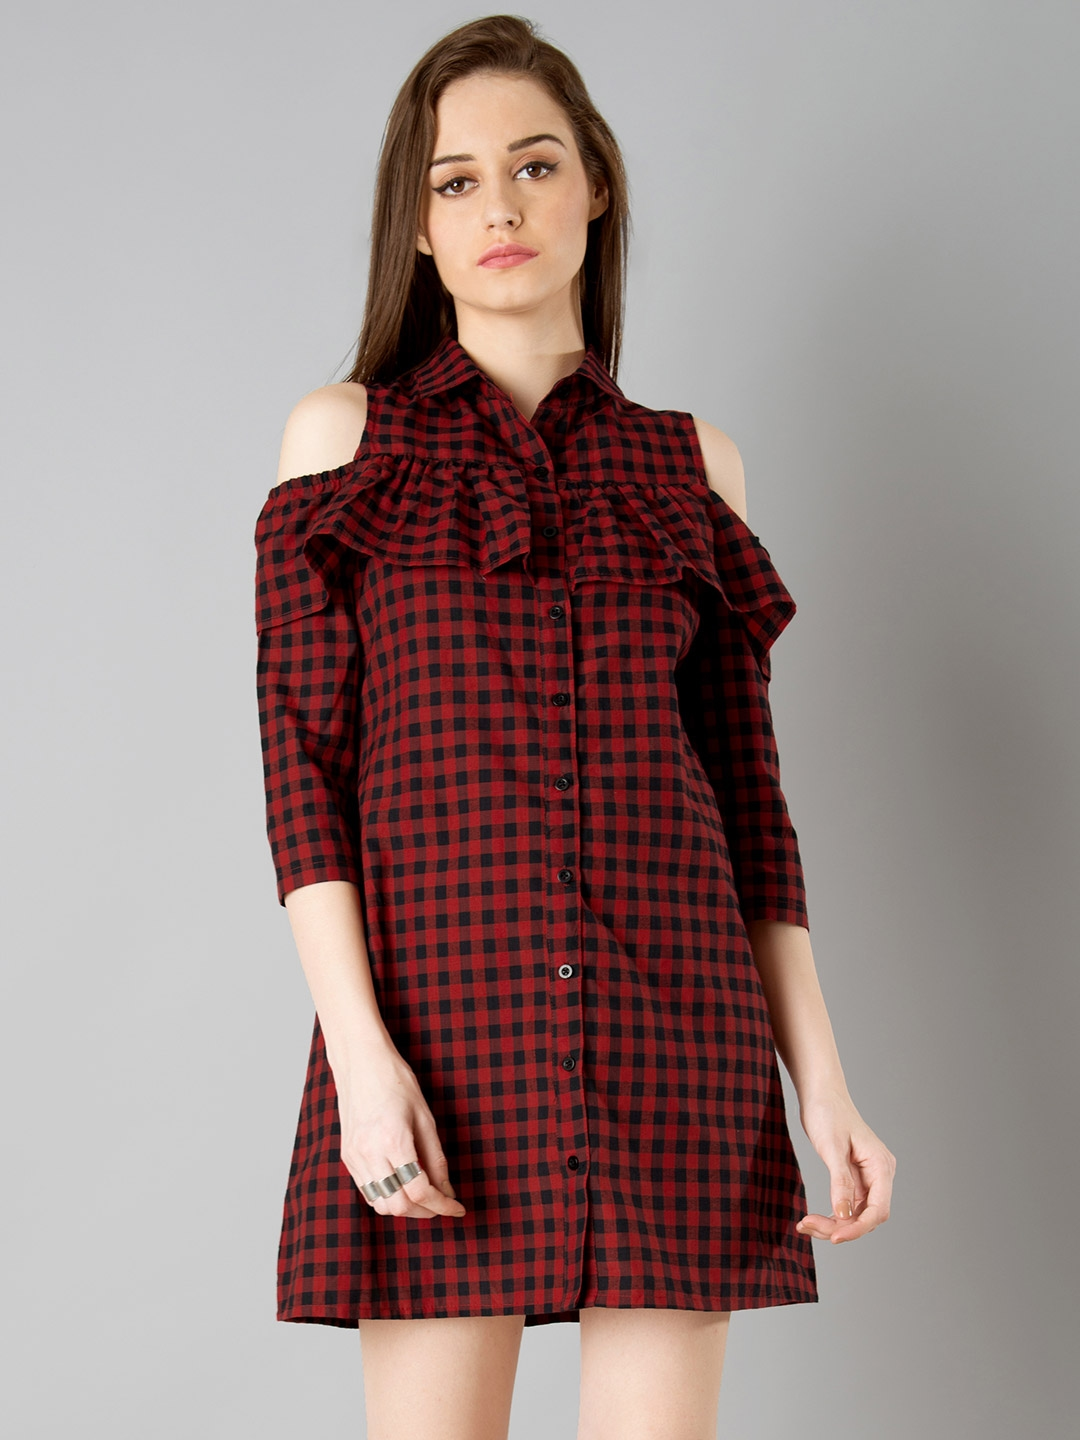 7fd6fce9d4f3 Buy FabAlley Women Red & Black Checked Shirt Dress - Dresses for ...